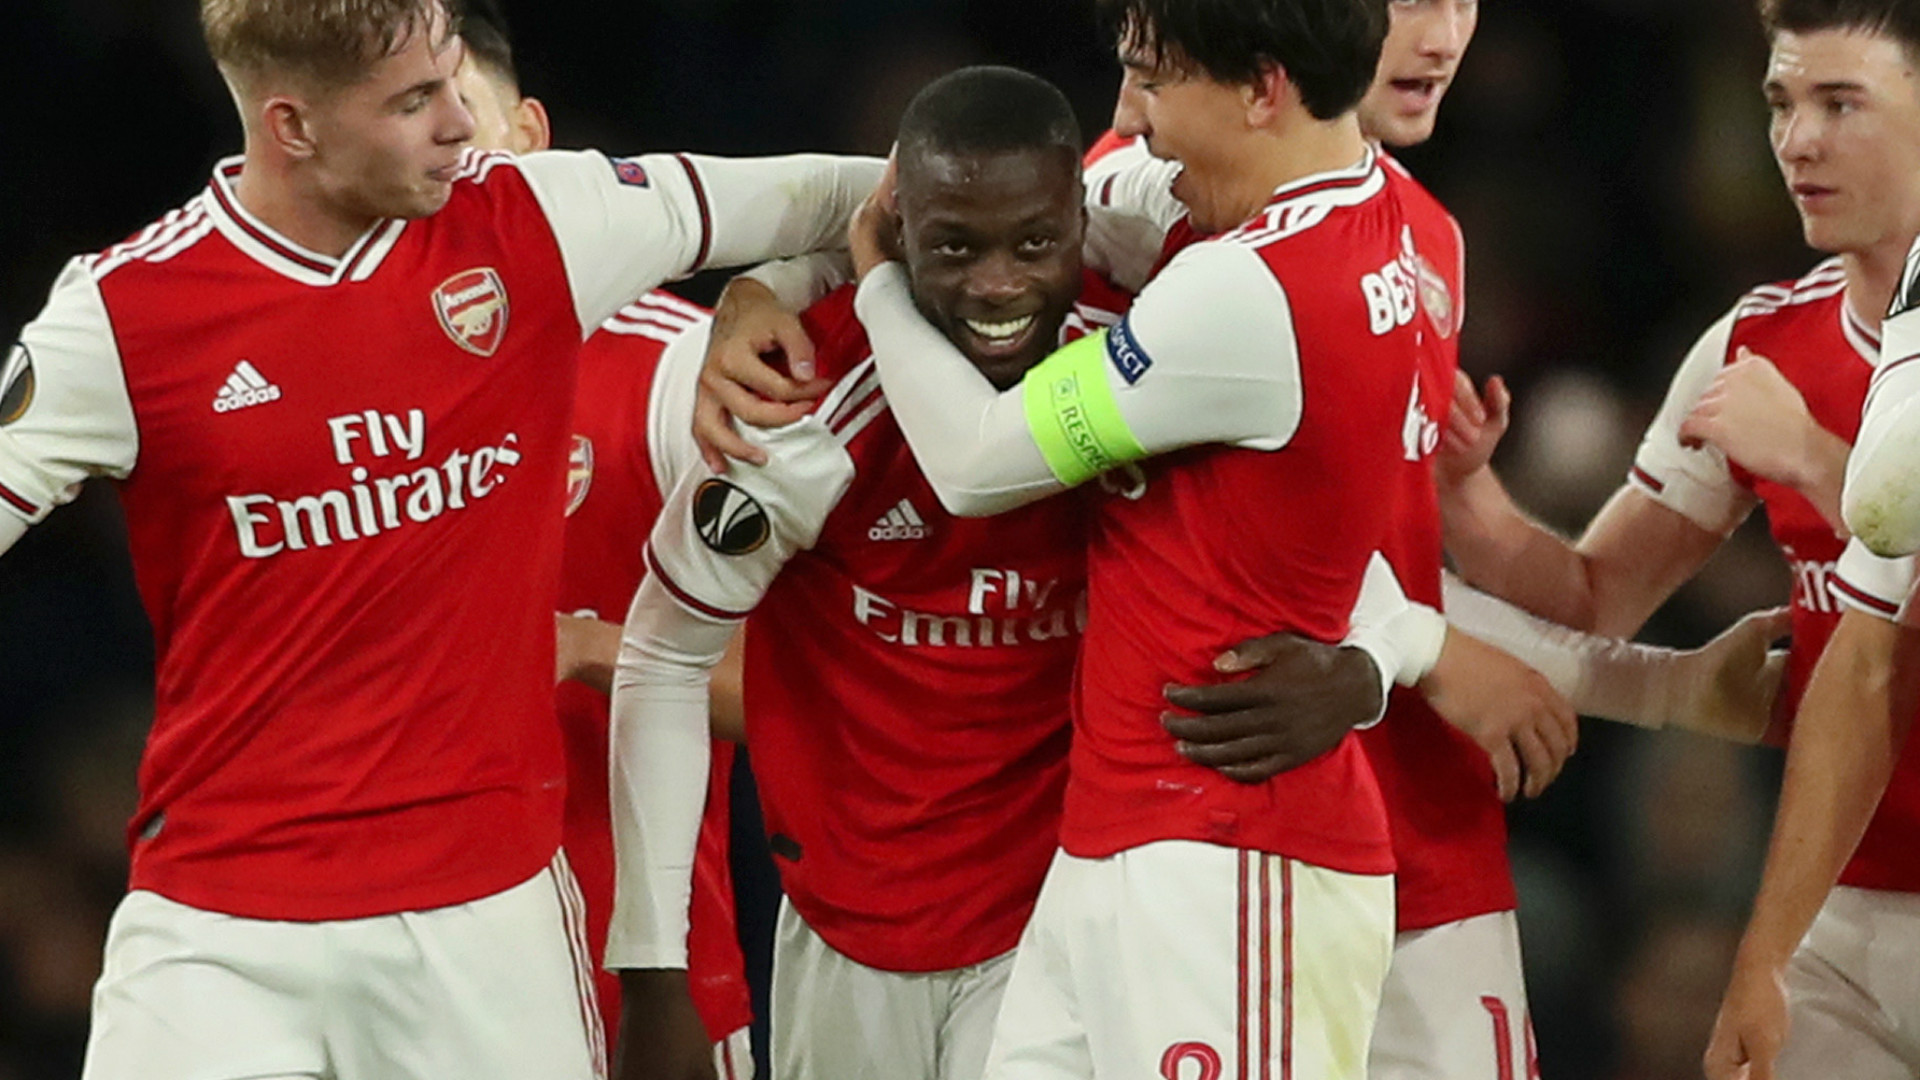 Pepe matches Saka for the most Arsenal assists this season